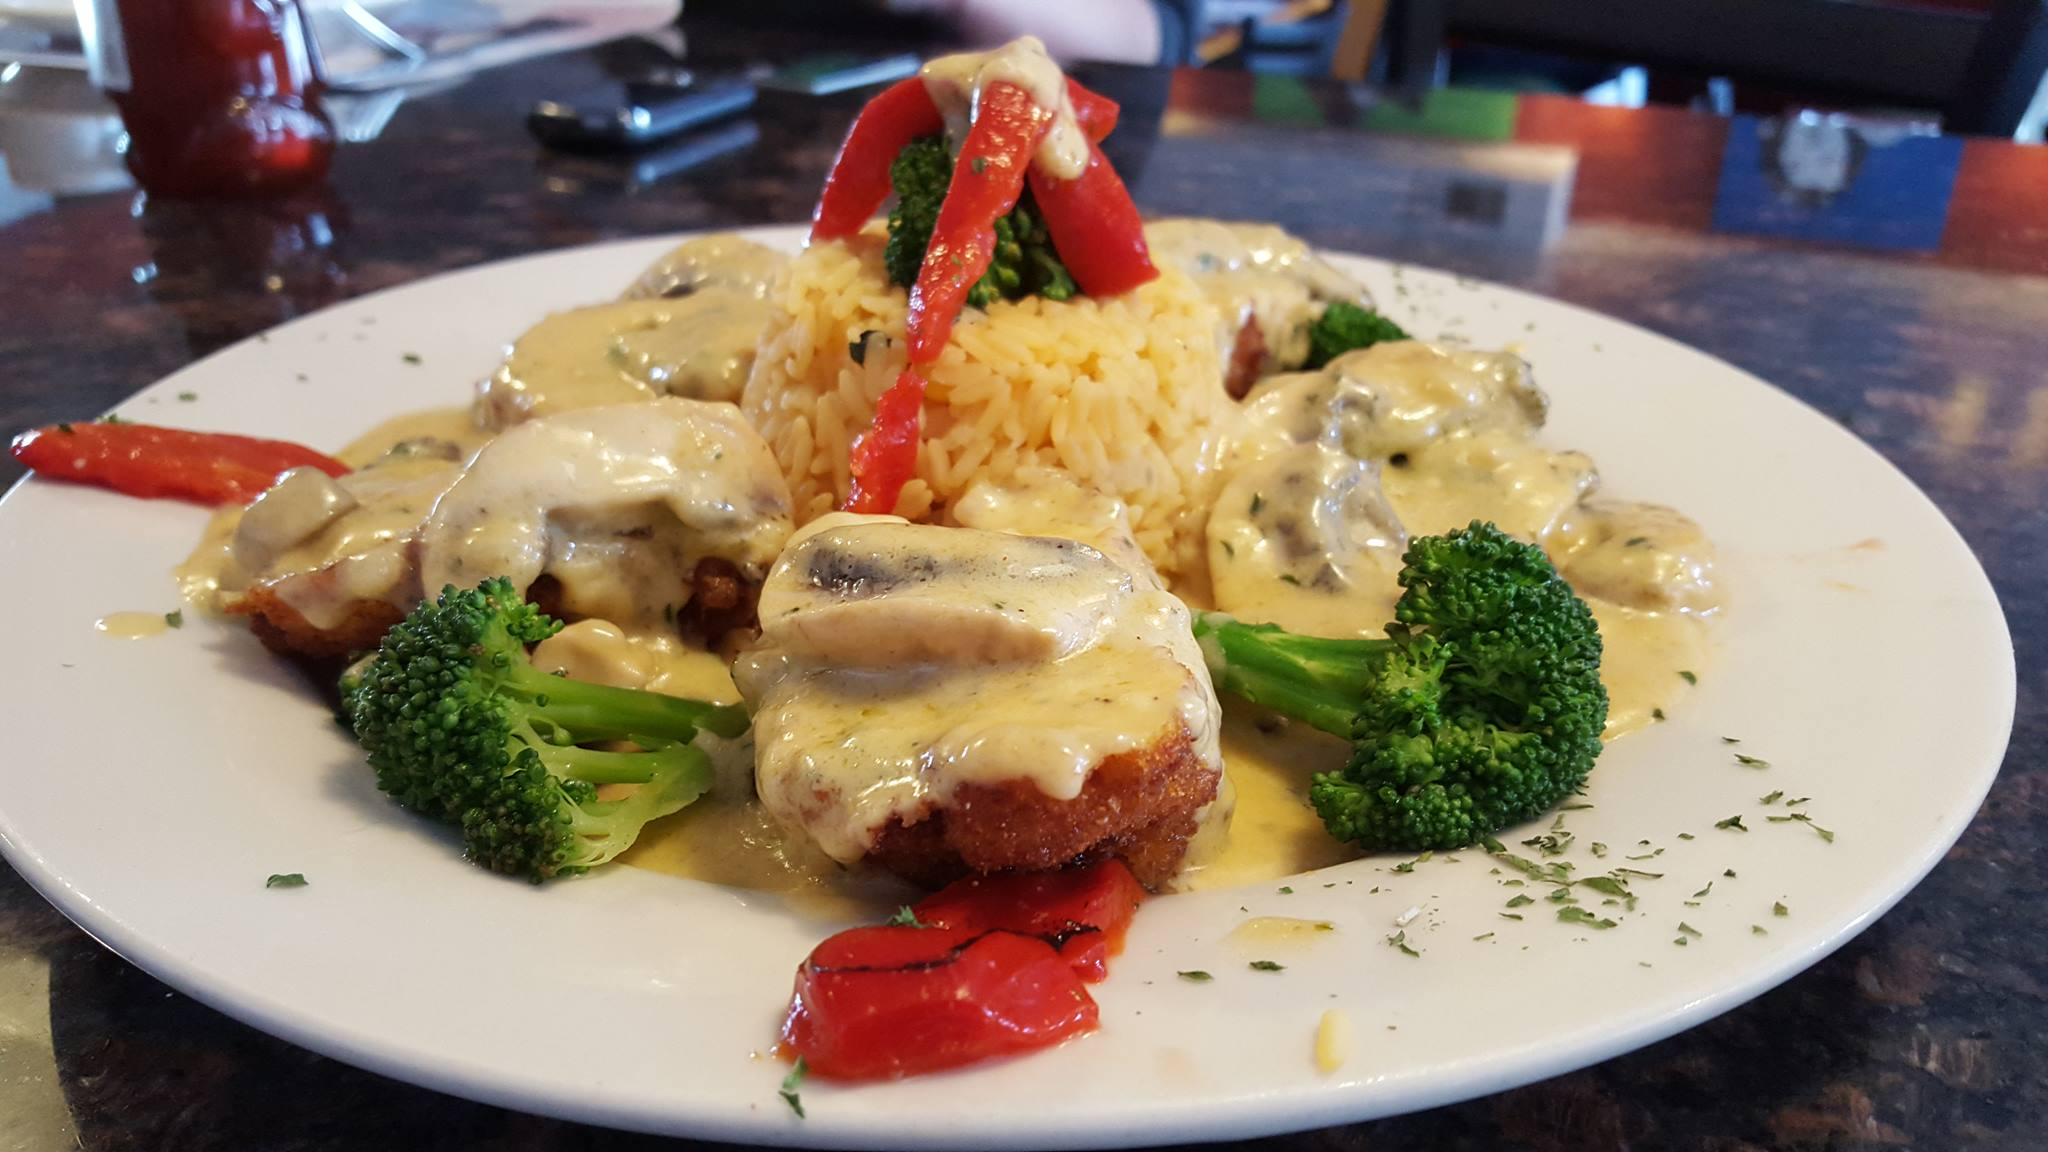 breaded chicken with roasted peppers, broccoli and mushrooms in a white cream sauce served with a side of rice